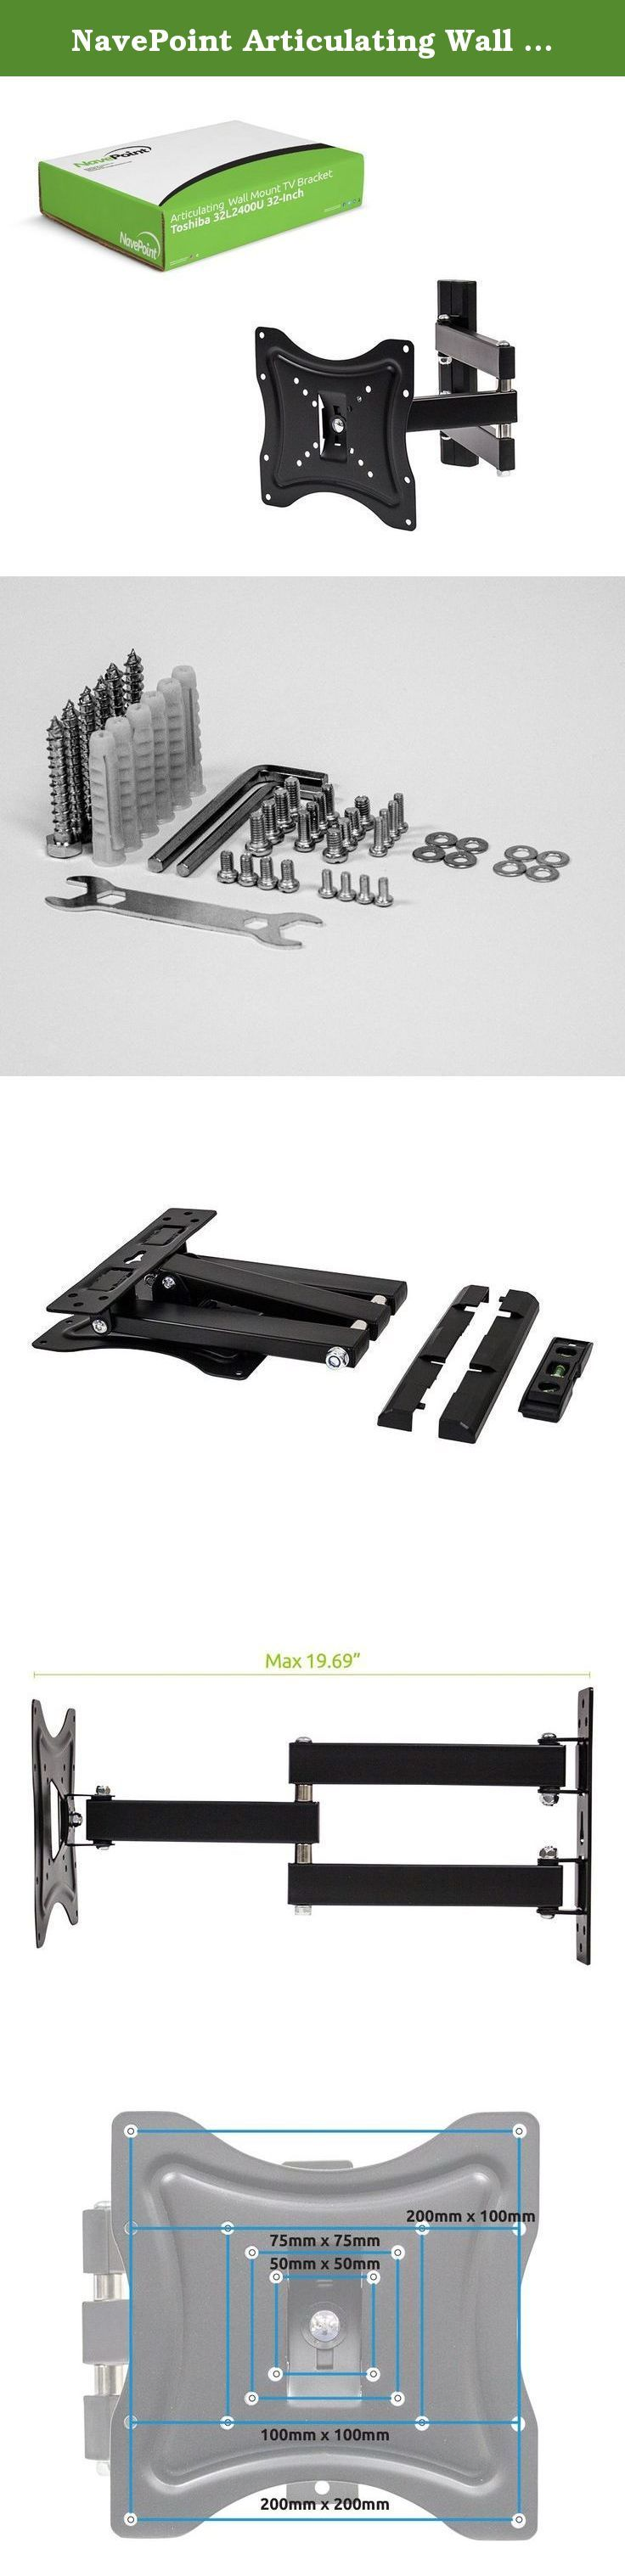 NavePoint Articulating Wall Mount TV Bracket for Toshiba 32L2400U 32-Inch Flat Screen TV. This full motion articulating wall mount is perfect for mounting your Toshiba 32L2400U 32-Inch to the wall. It has up to a 15 degree up and down tilt and 4 degree rotation allowing you to position the screen perfectly for your application. It is easy to install and comes with all of the necessary hardware.